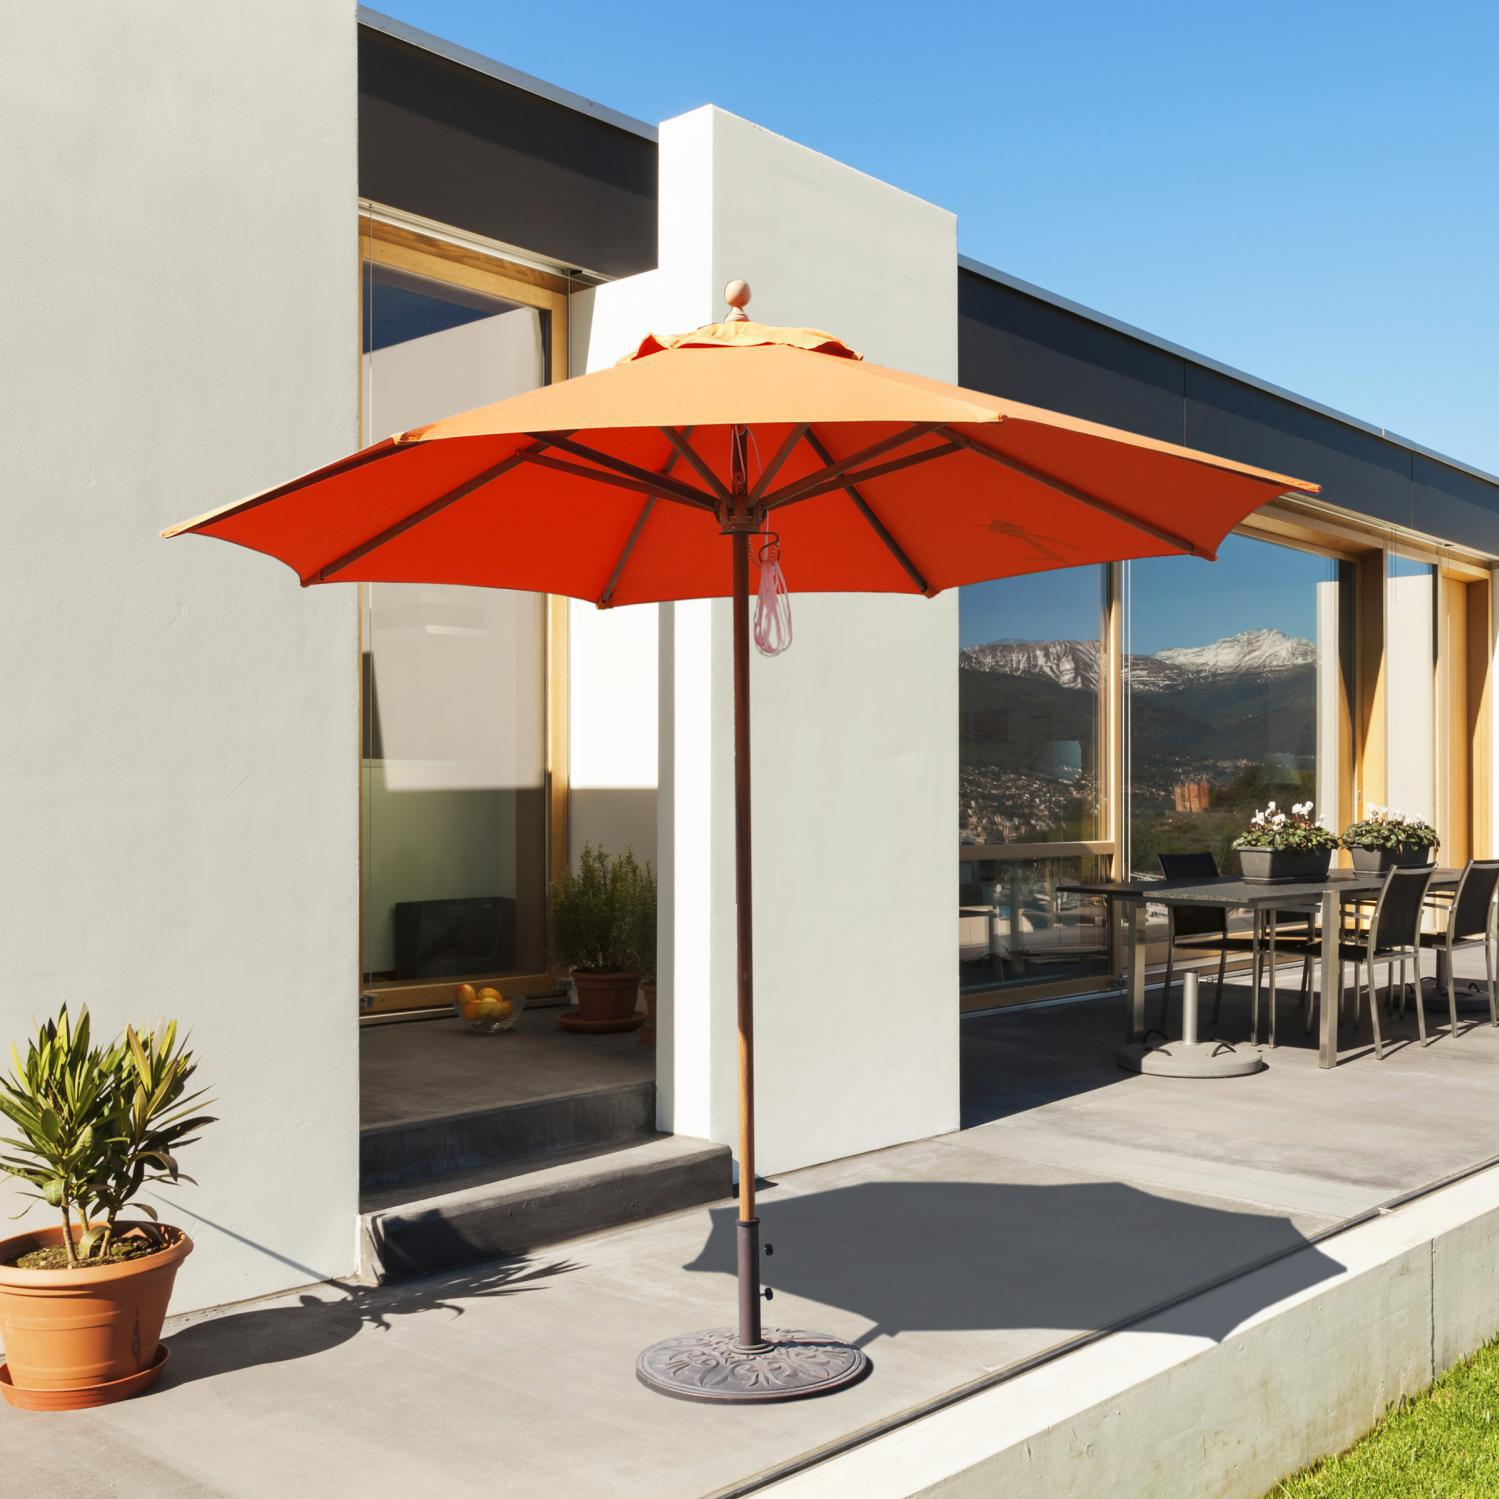 Galtech 9 Ft Teak Patio Umbrella With Pulley Lift 2505589